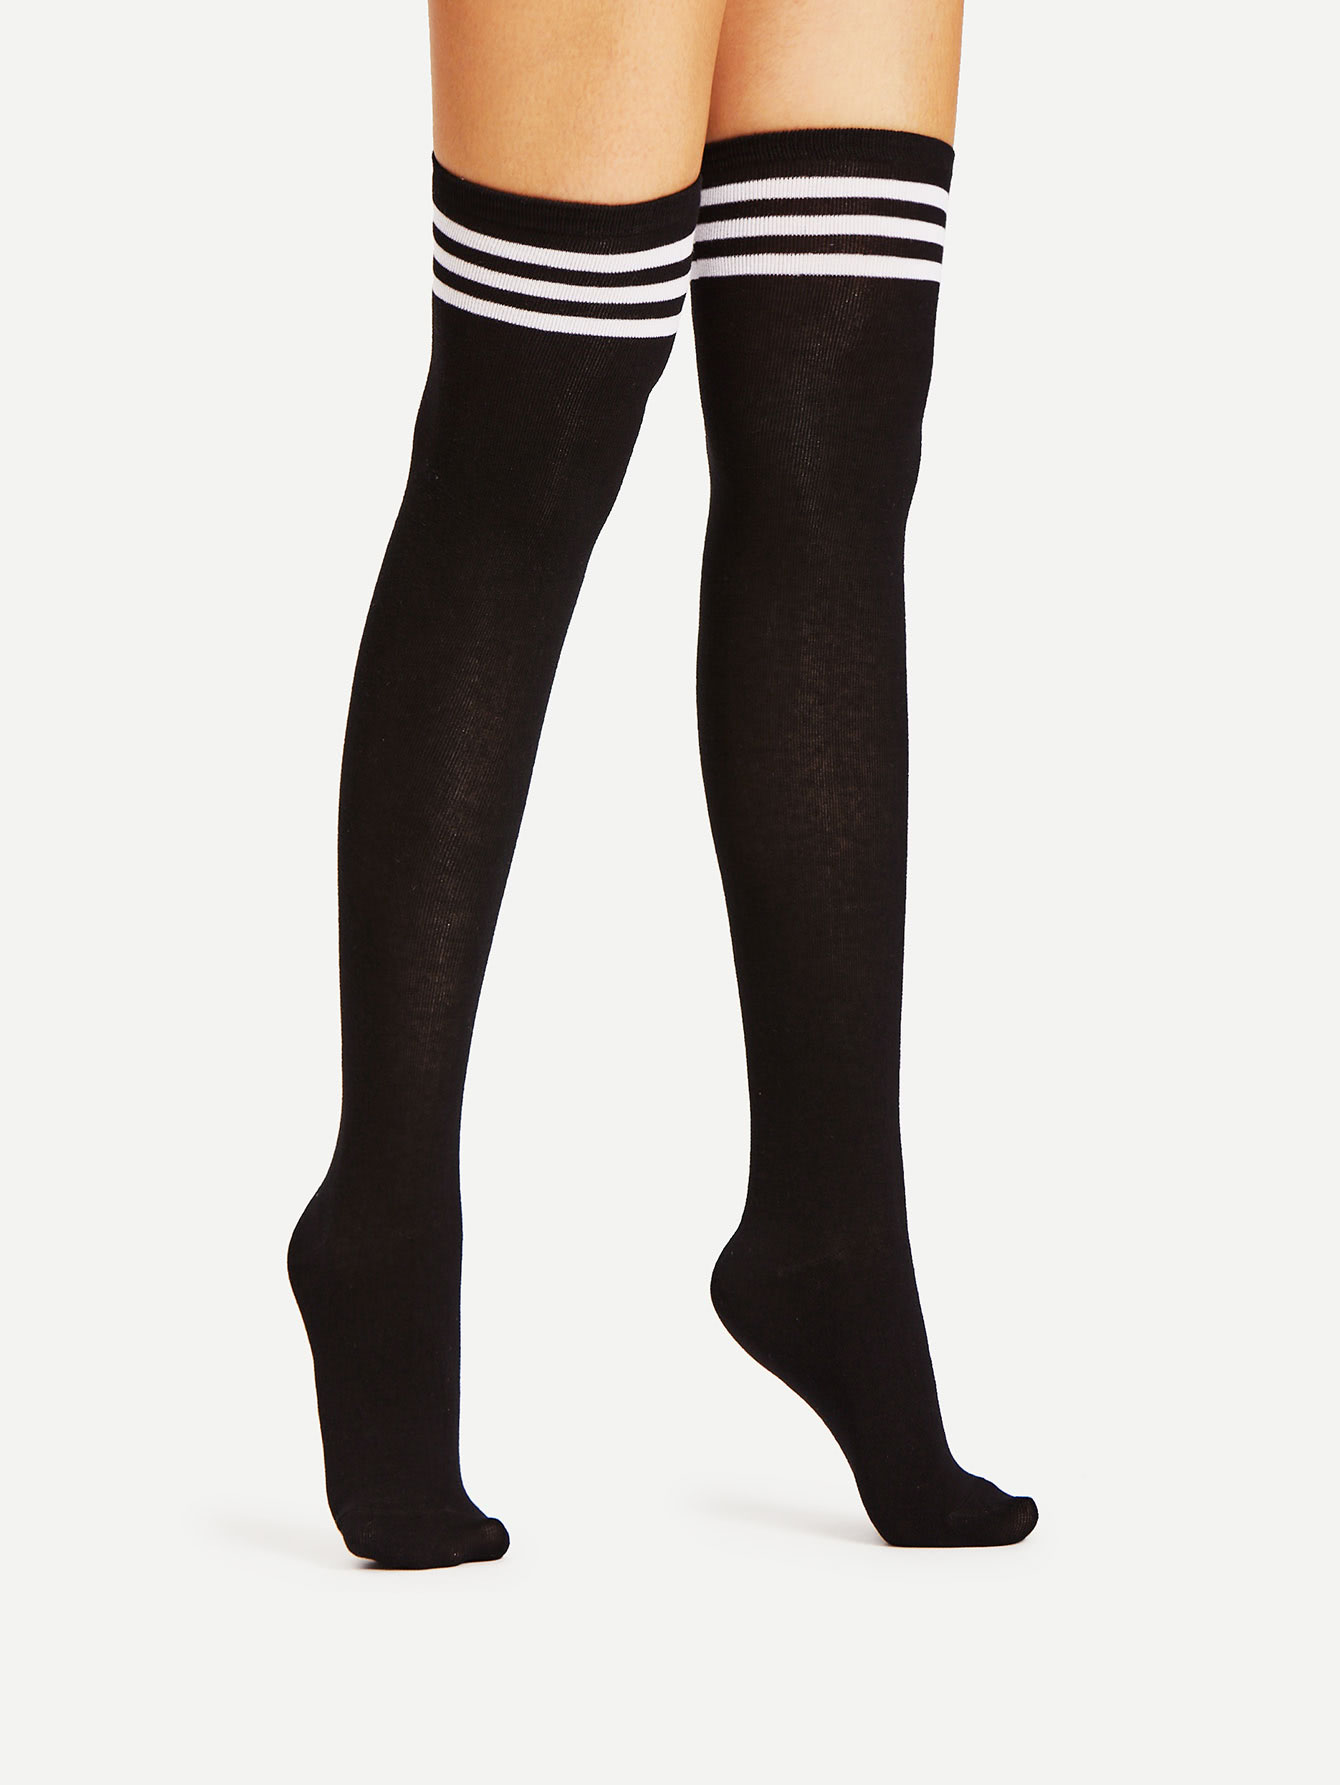 Special Buy. See more special offers. Customer Rating. 4 Stars & Up. 3 Stars & Up. Knee Socks. Showing 48 of results that match your query. Search Product Result. Product - Deago Women Thigh High Socks Over the Knee Leg Warmer Tall Long Boot Socks. Product Image. Price $ 5. 99 - $ 6. Girls Ladies Women Thigh High Over the Knee.